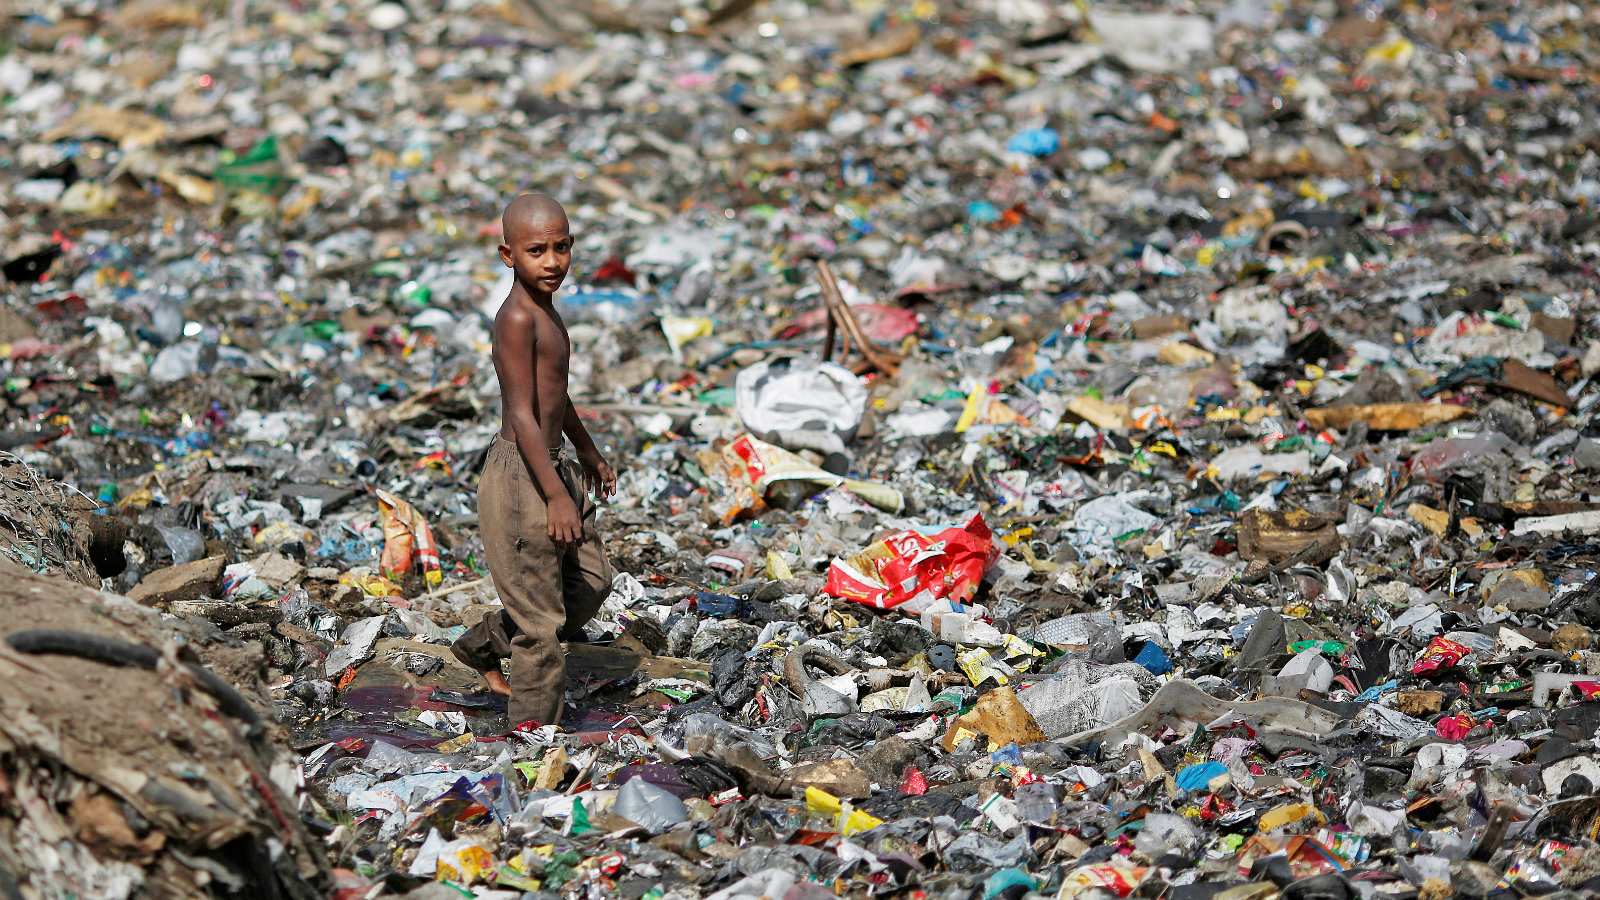 A boy walks on a pile of garbage covering a drain in New Delhi, India, April 23, 2018.